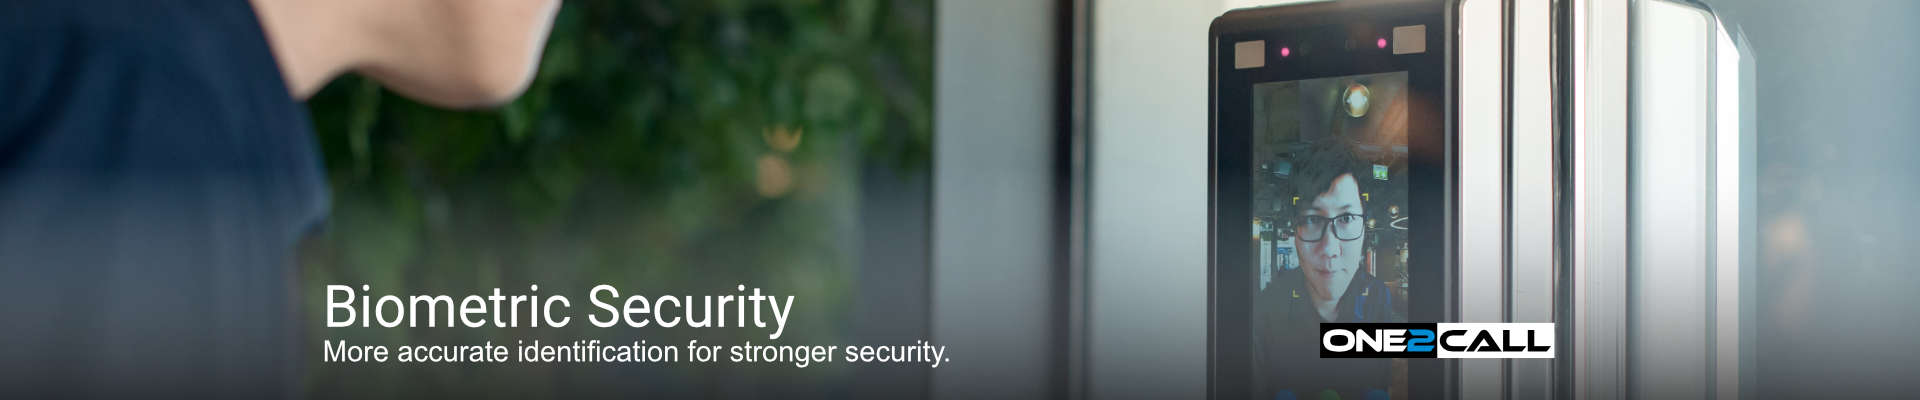 Biometric Security - More accurate identification for stronger security.